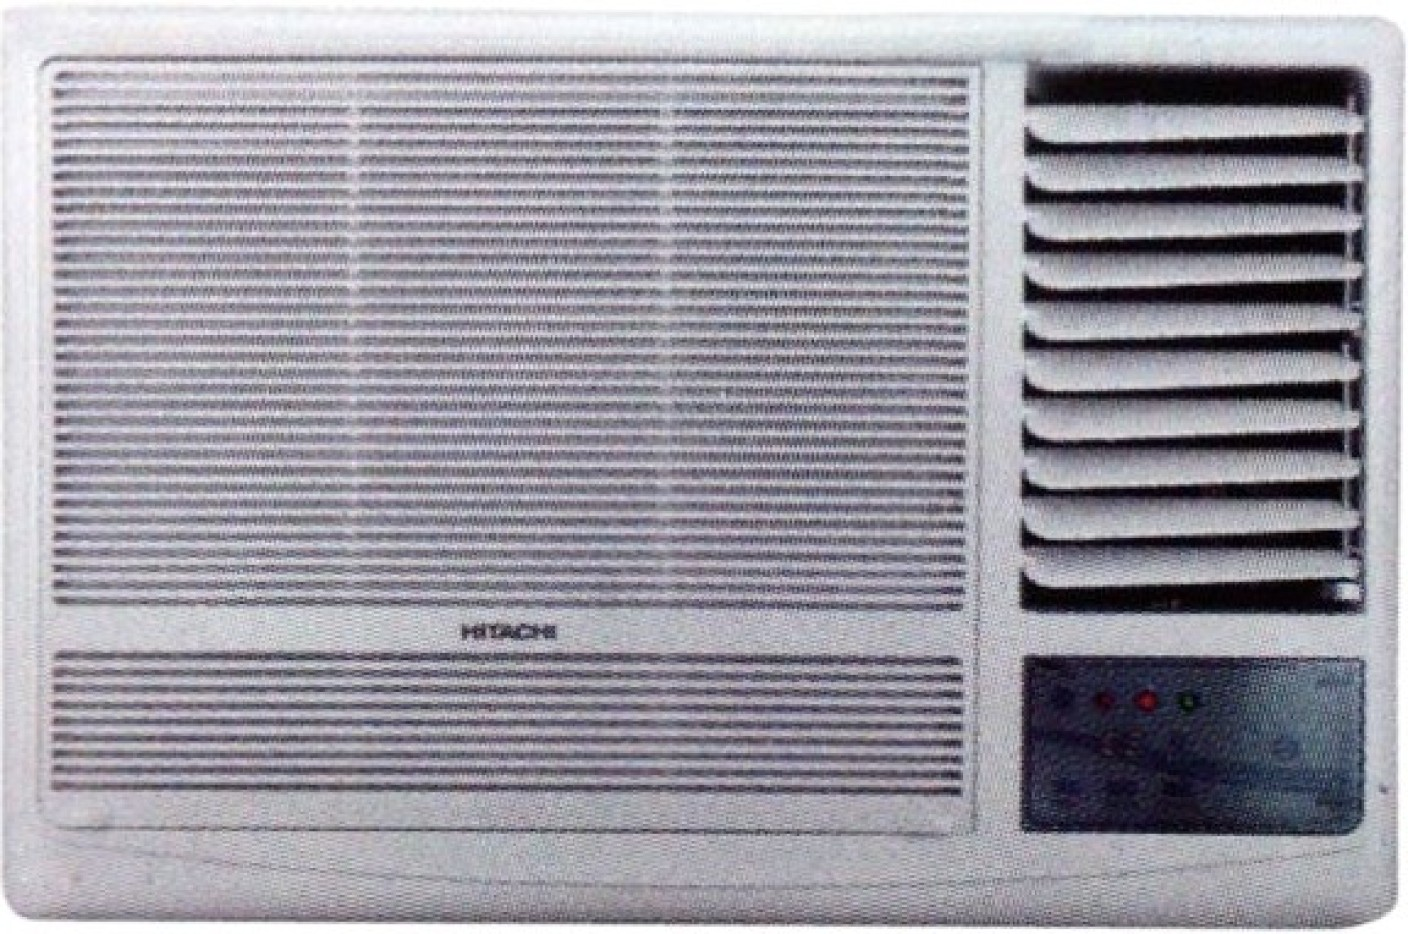 Buy hitachi 1 ton 3 star bee rating 2017 for Window ratings